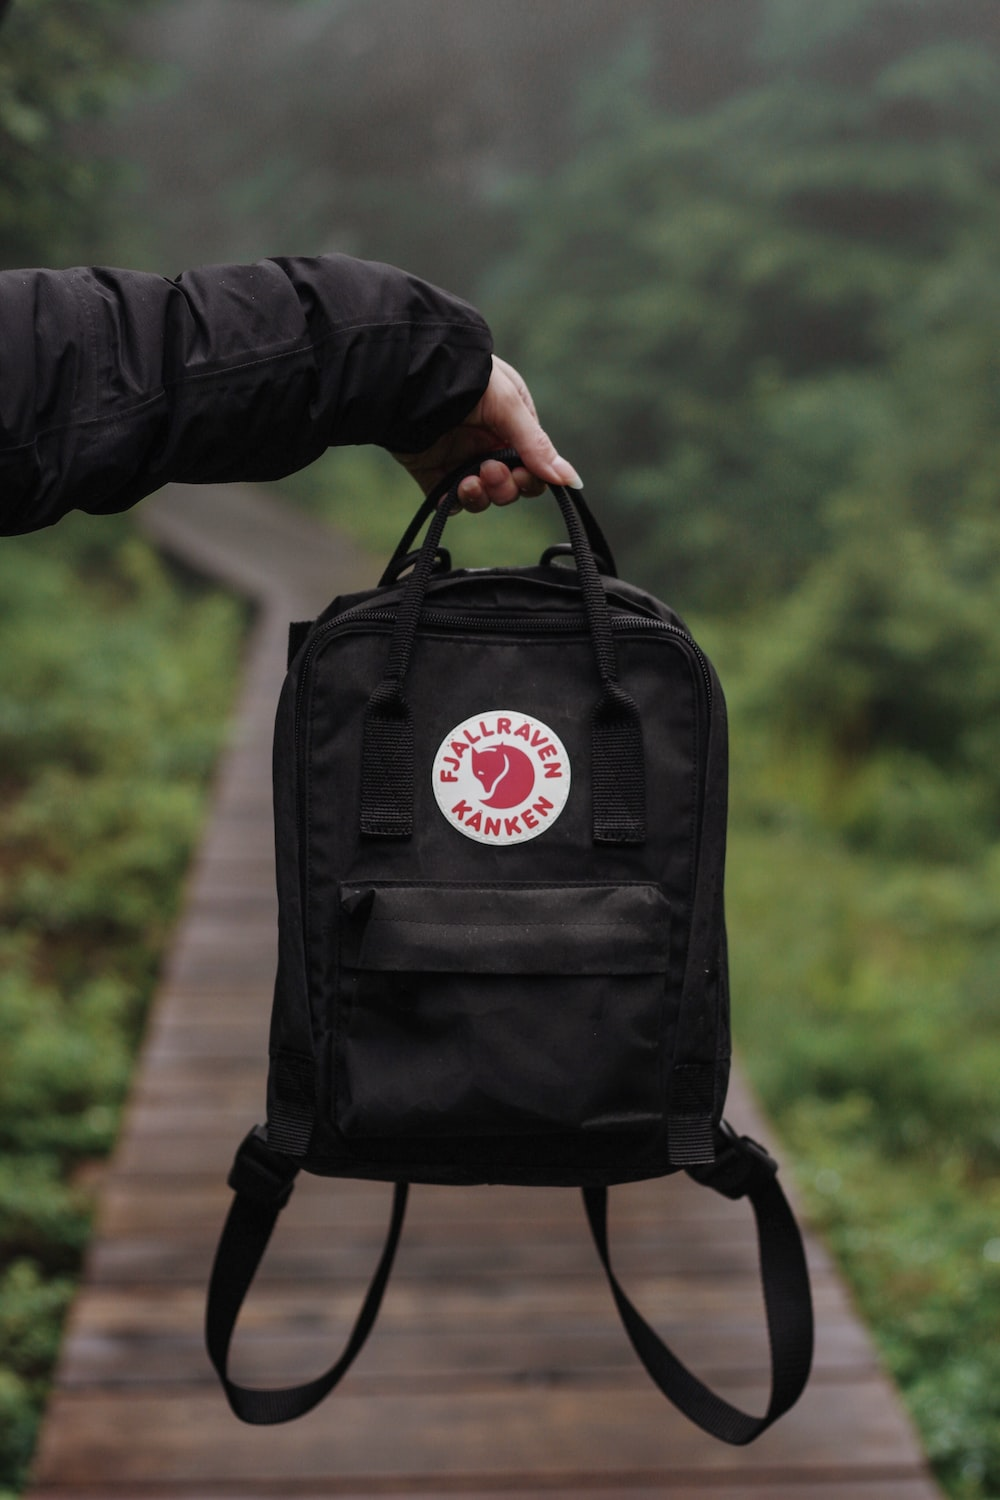 person holding black and red leather backpack